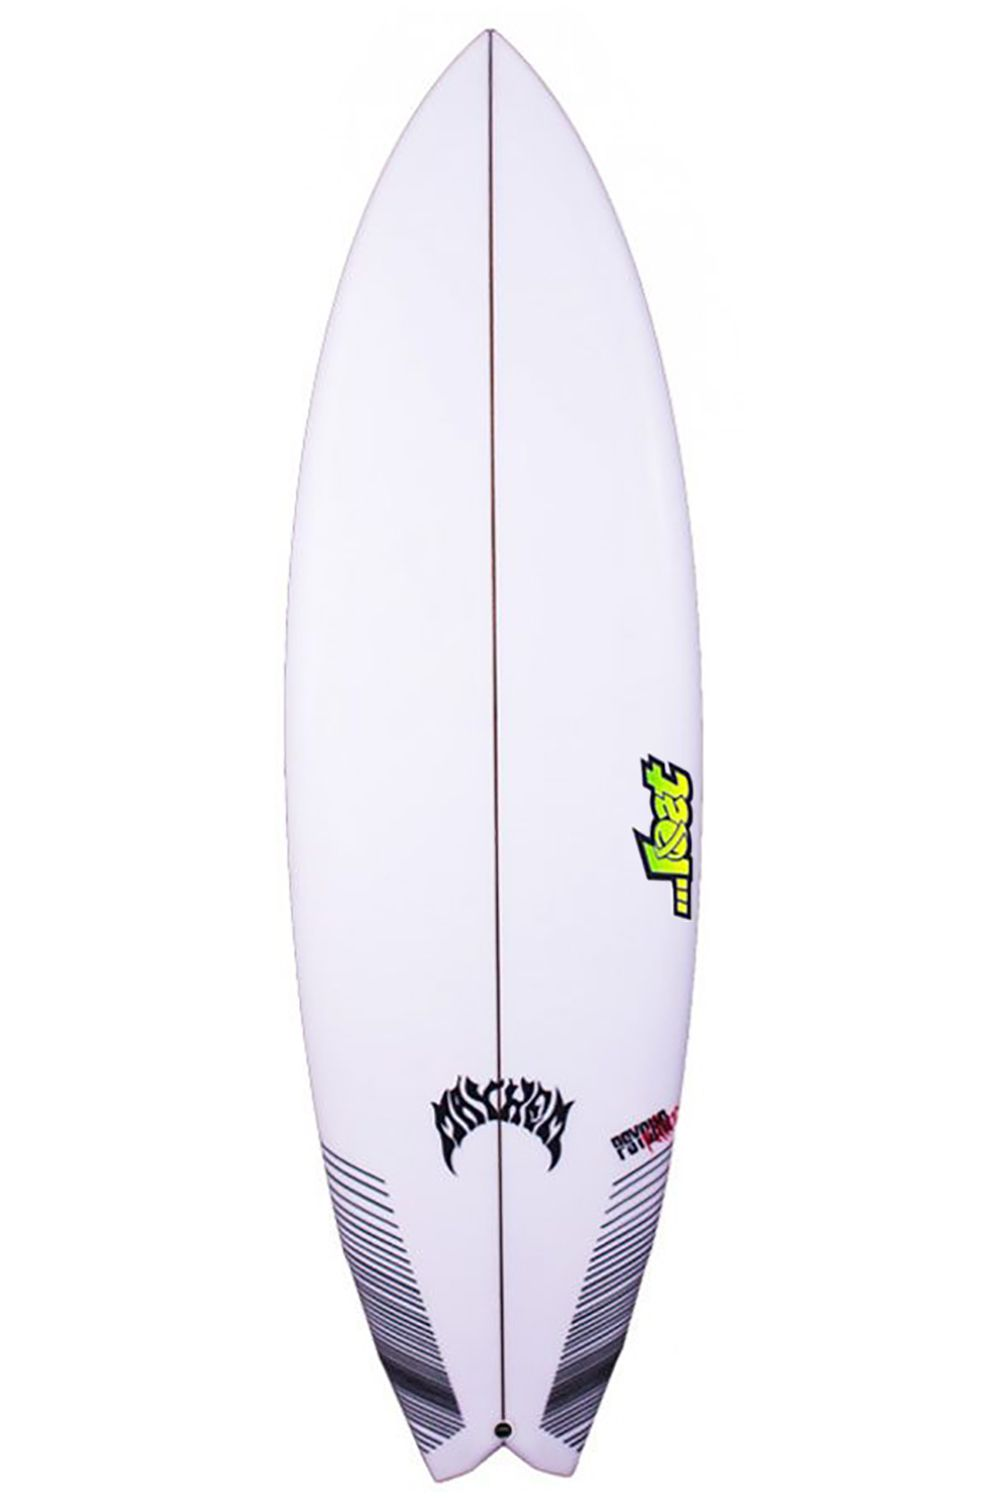 Prancha Surf Lost 5'7 PSYCHO KILLER Swallow Tail - White FCS II Multisystem 5ft7